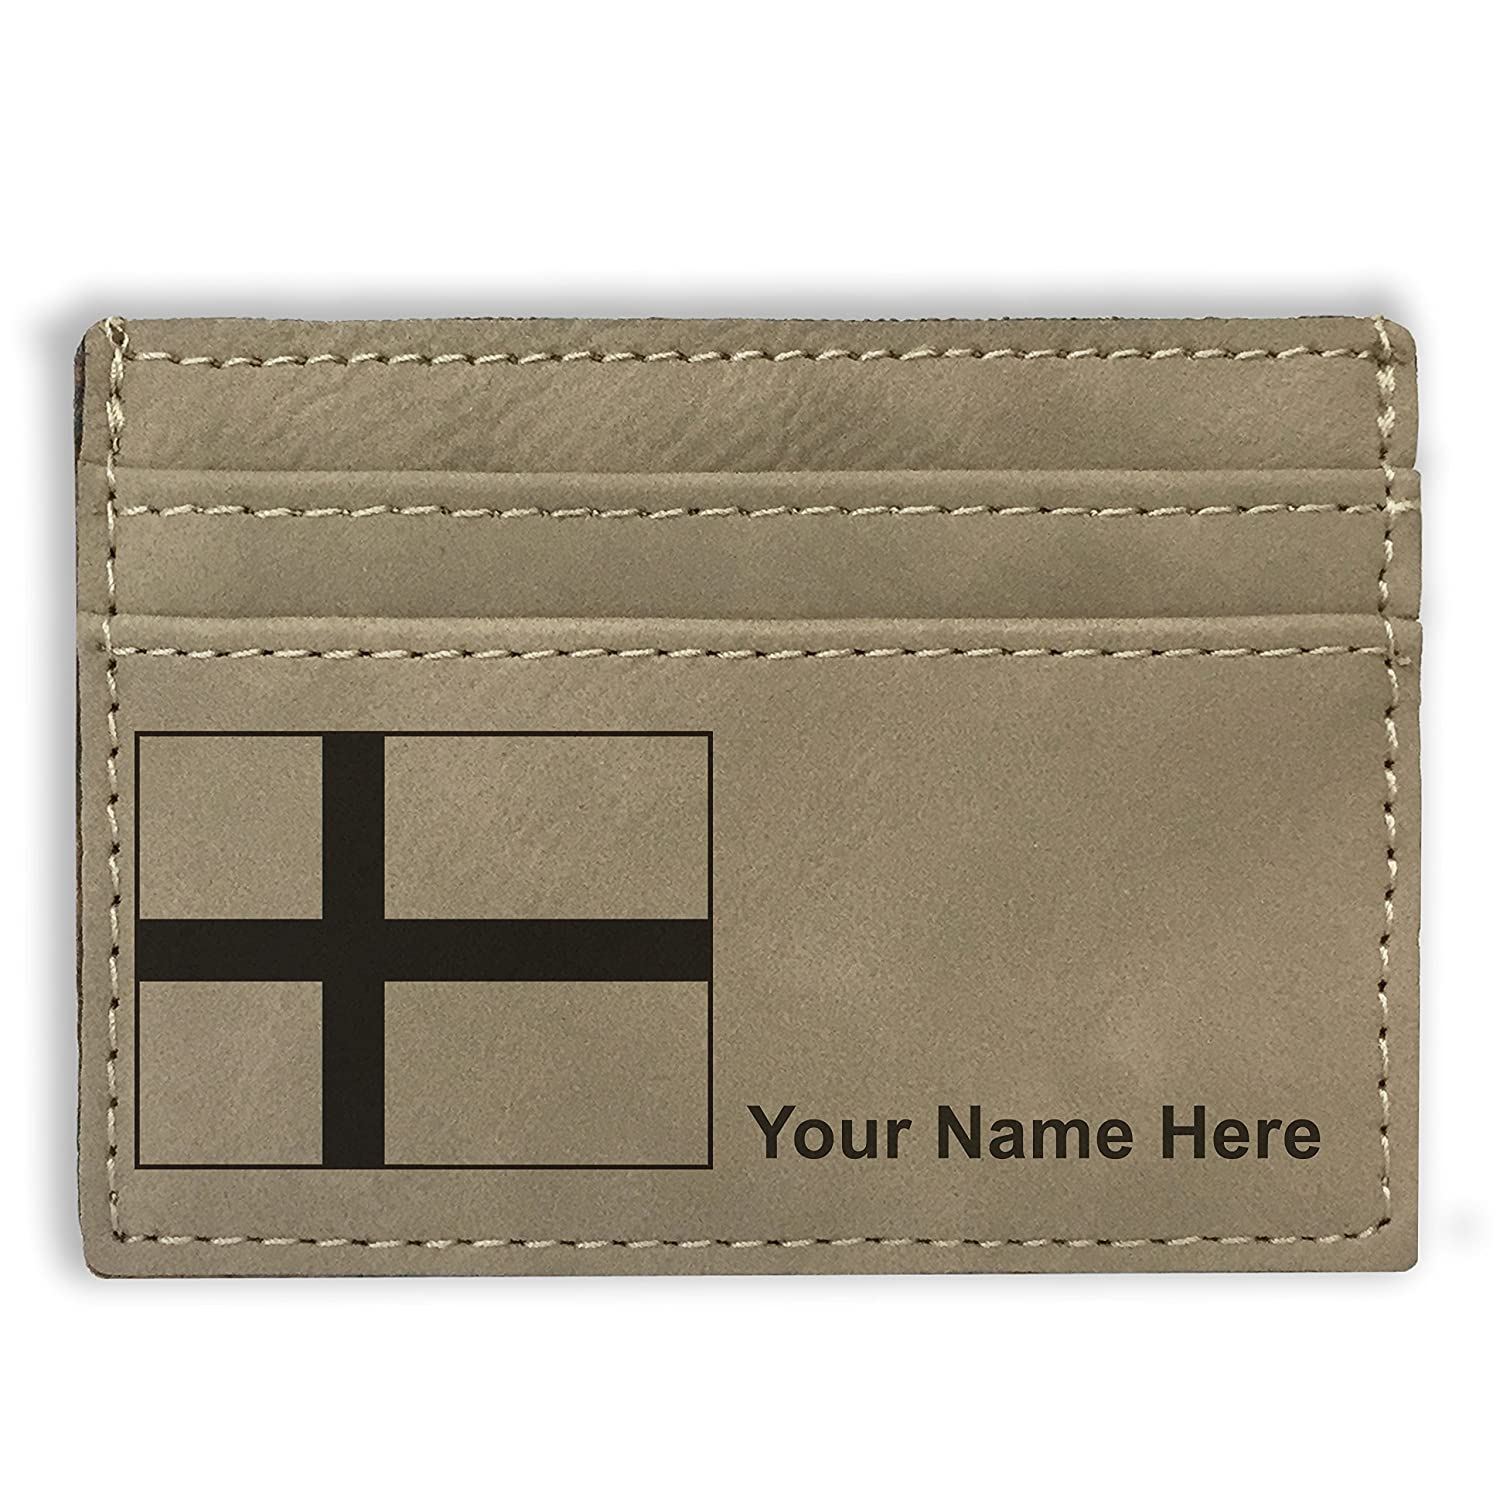 Flag of Denmark Money Clip Wallet Personalized Engraving Included